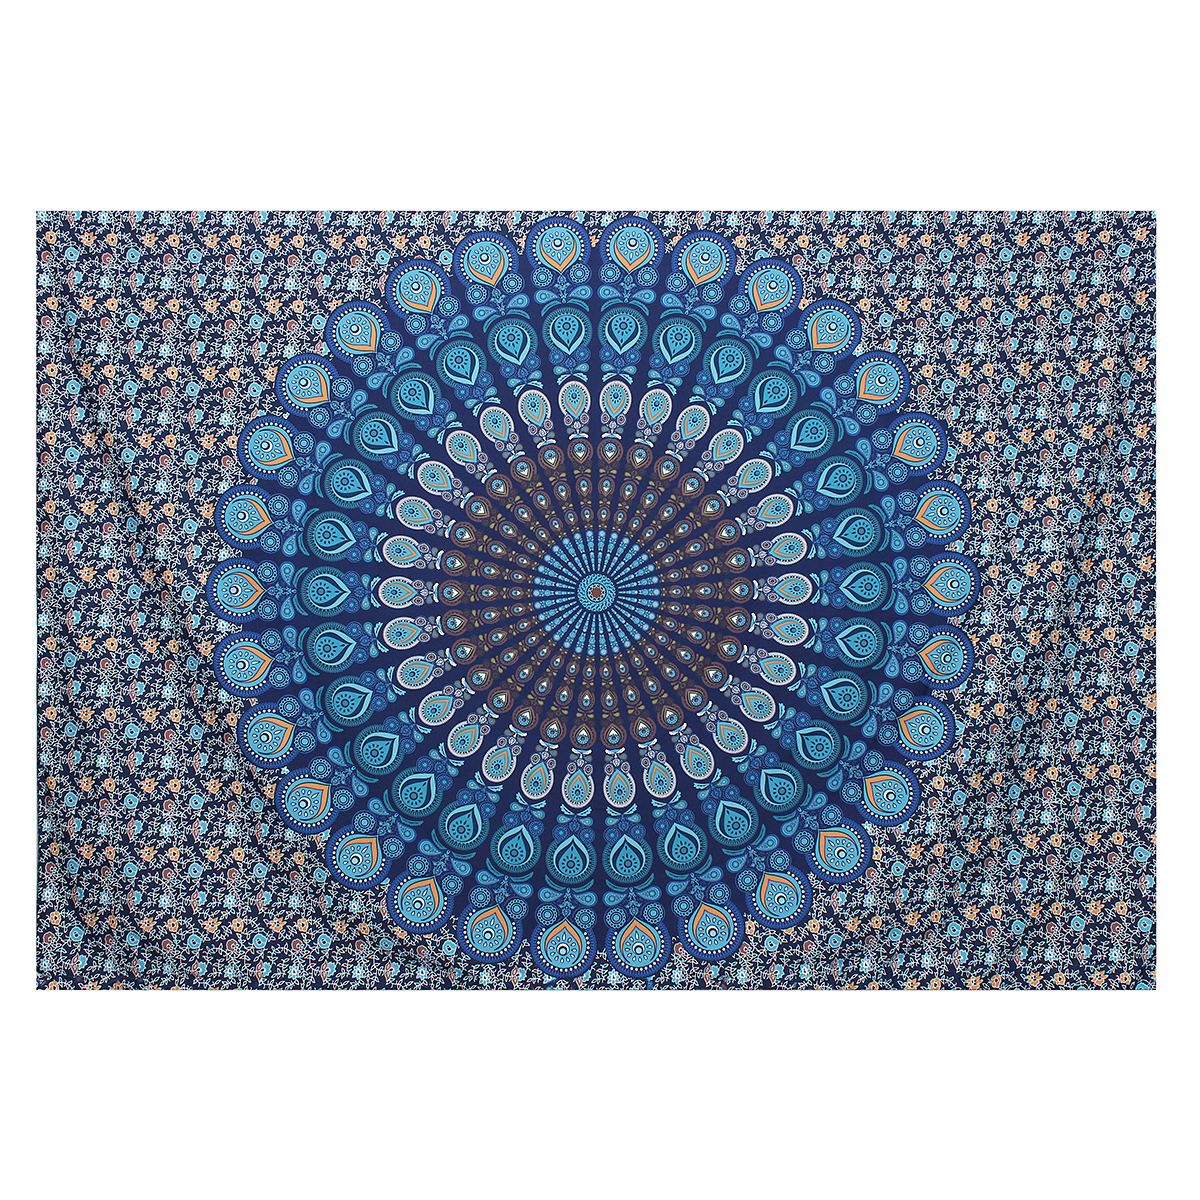 Dorm Indian Ethnic Mandala Wall Hanging Tapestry Throw Bohemian Bedspread Mat by